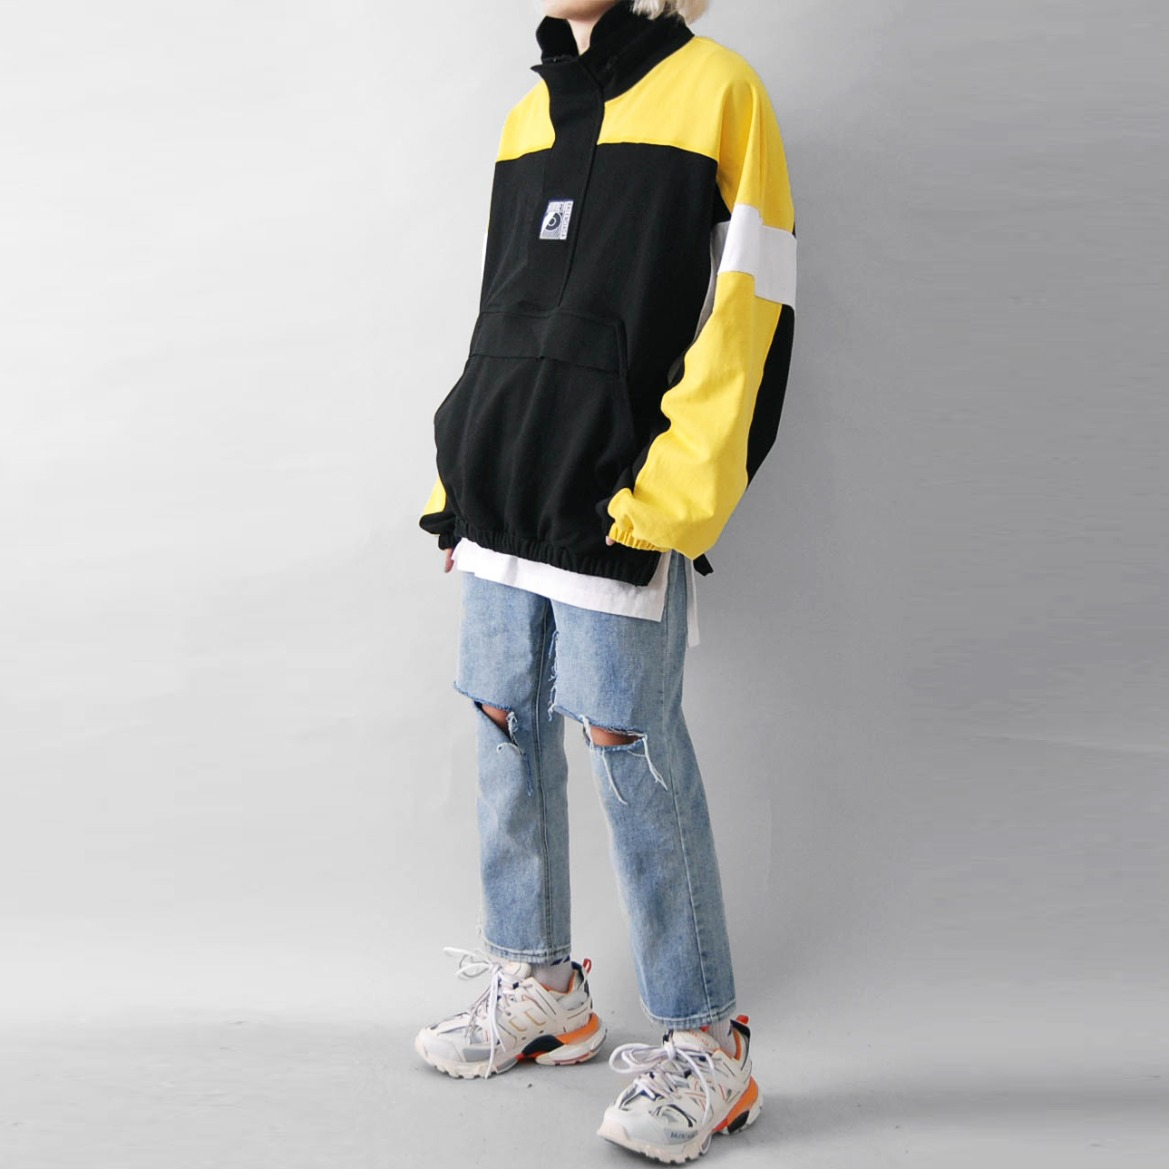 BAL 18 옴므 아노락 자켓 - BAL 18 HOMME ANORAK JACKET (3 COLOR)